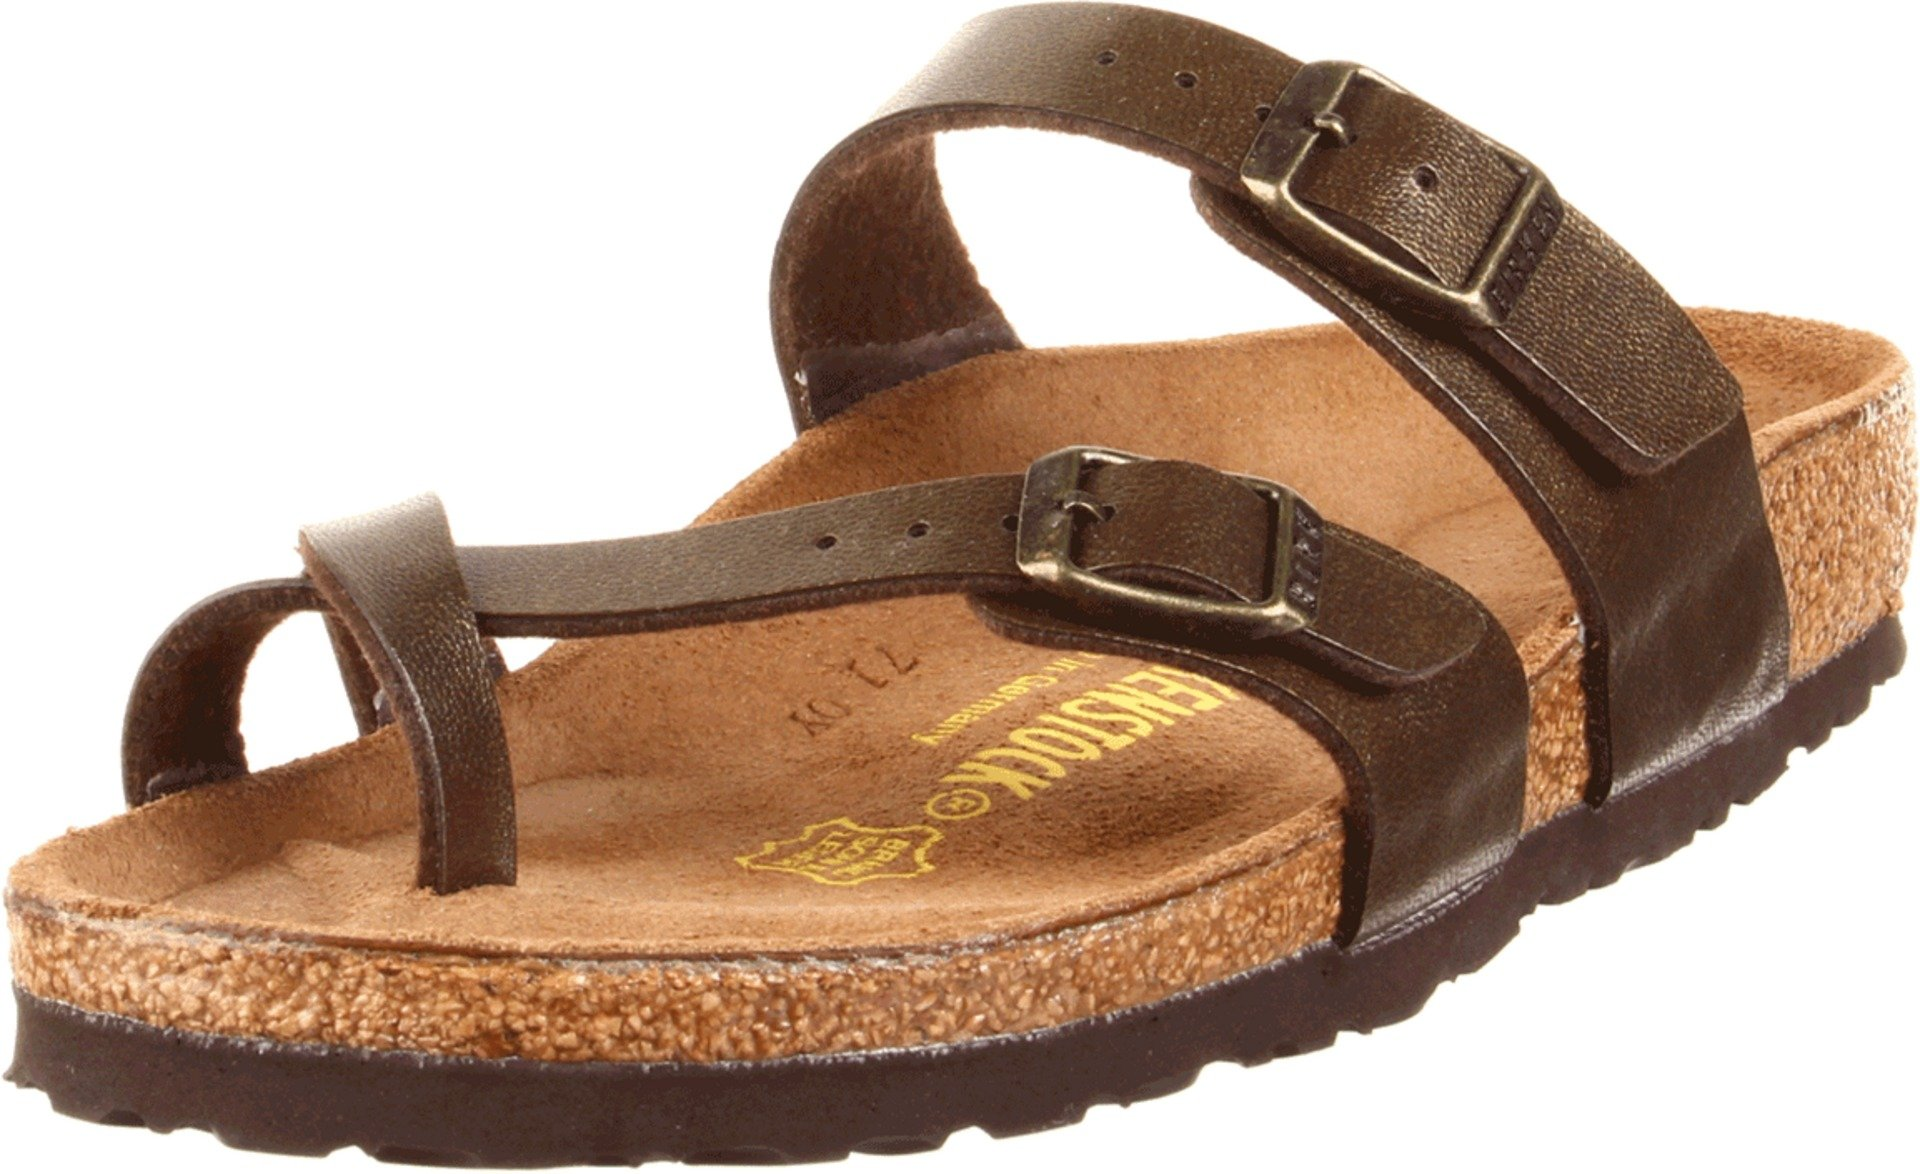 Birkenstock Women's Mayari Gold Brown Birko-Flor Sandal 40 N (US Women's 9-9.5)